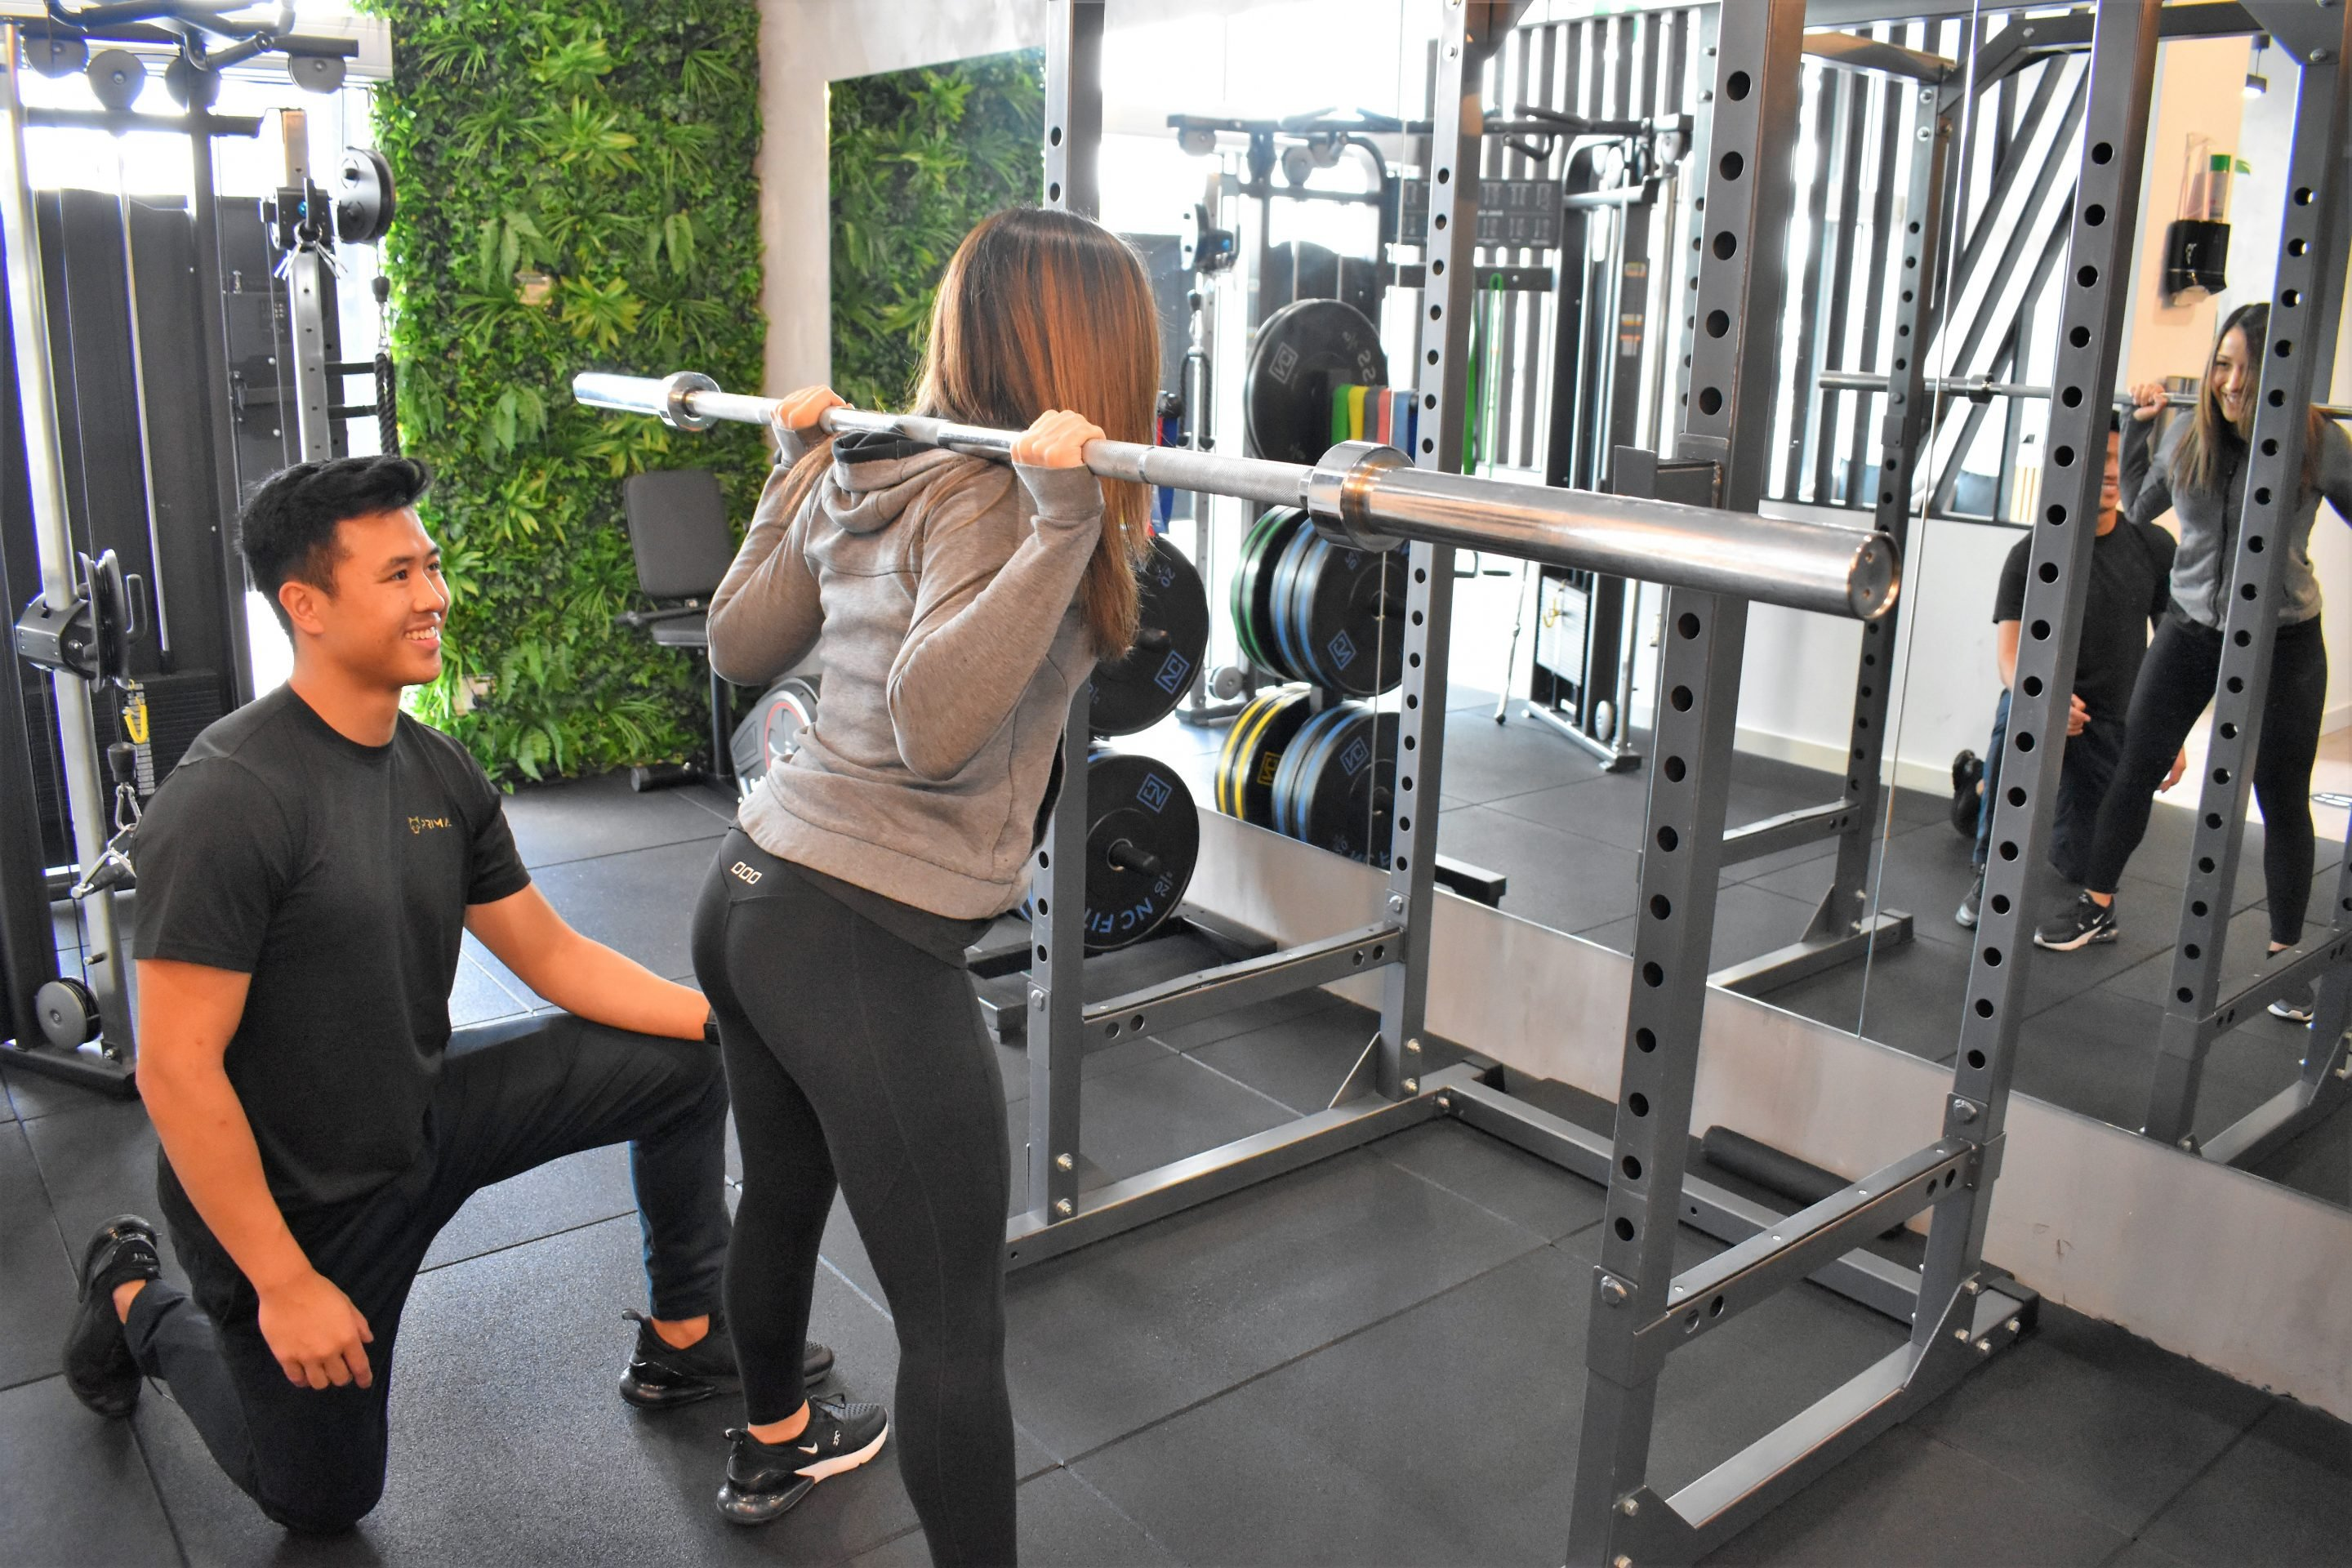 Primal Physiotherapy & Rehabilitation Personal Training Services for fitness goals